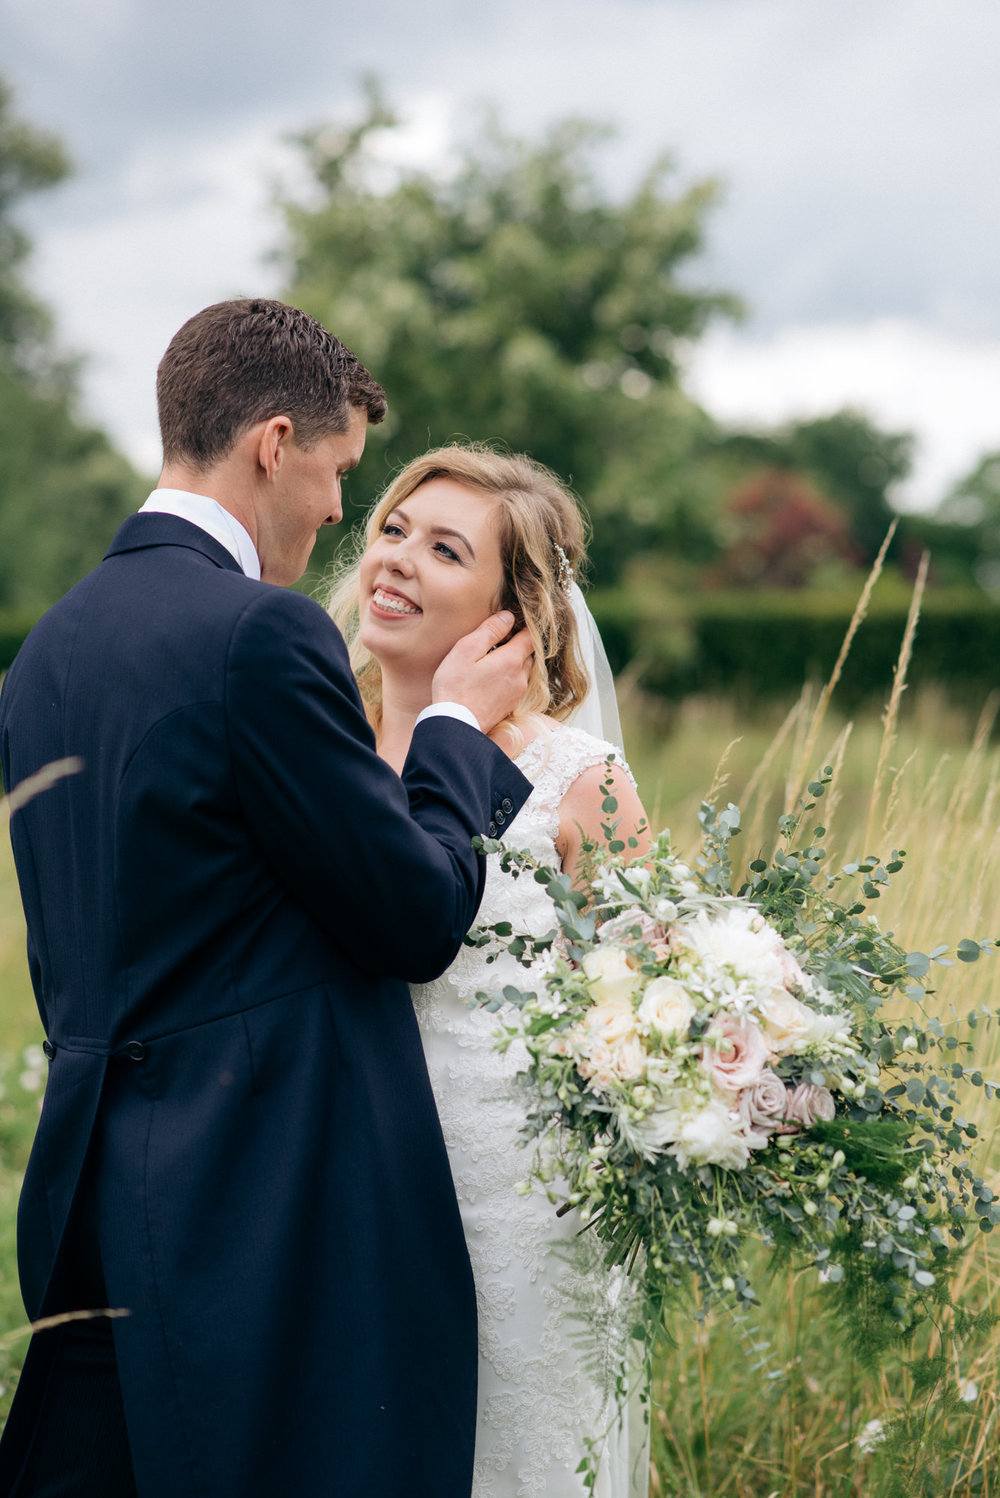 portrait of the bride and groom on their wedding day at Narborough Hall Gardens